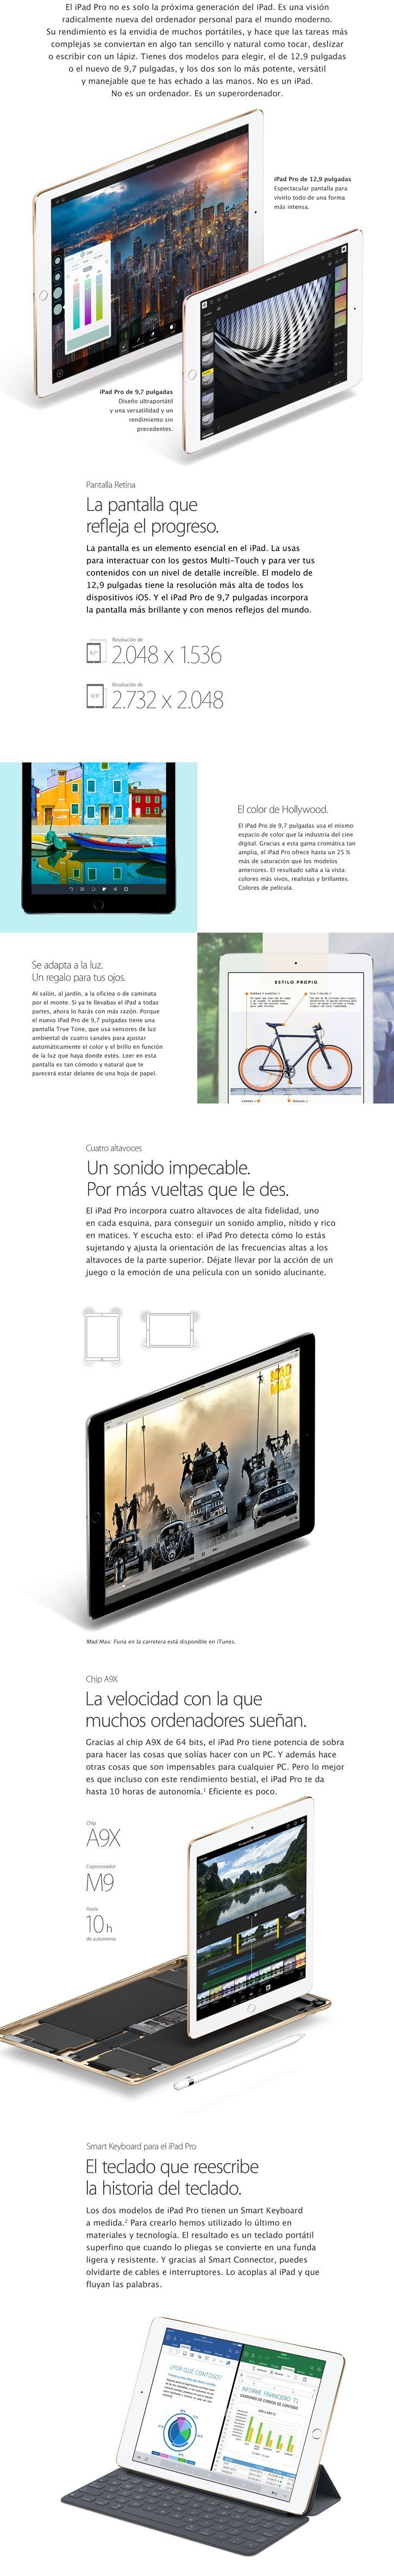 ESES_iPad_Pro_Family_Q316_Web_Product_Page_Standard_Part_1_04(1)